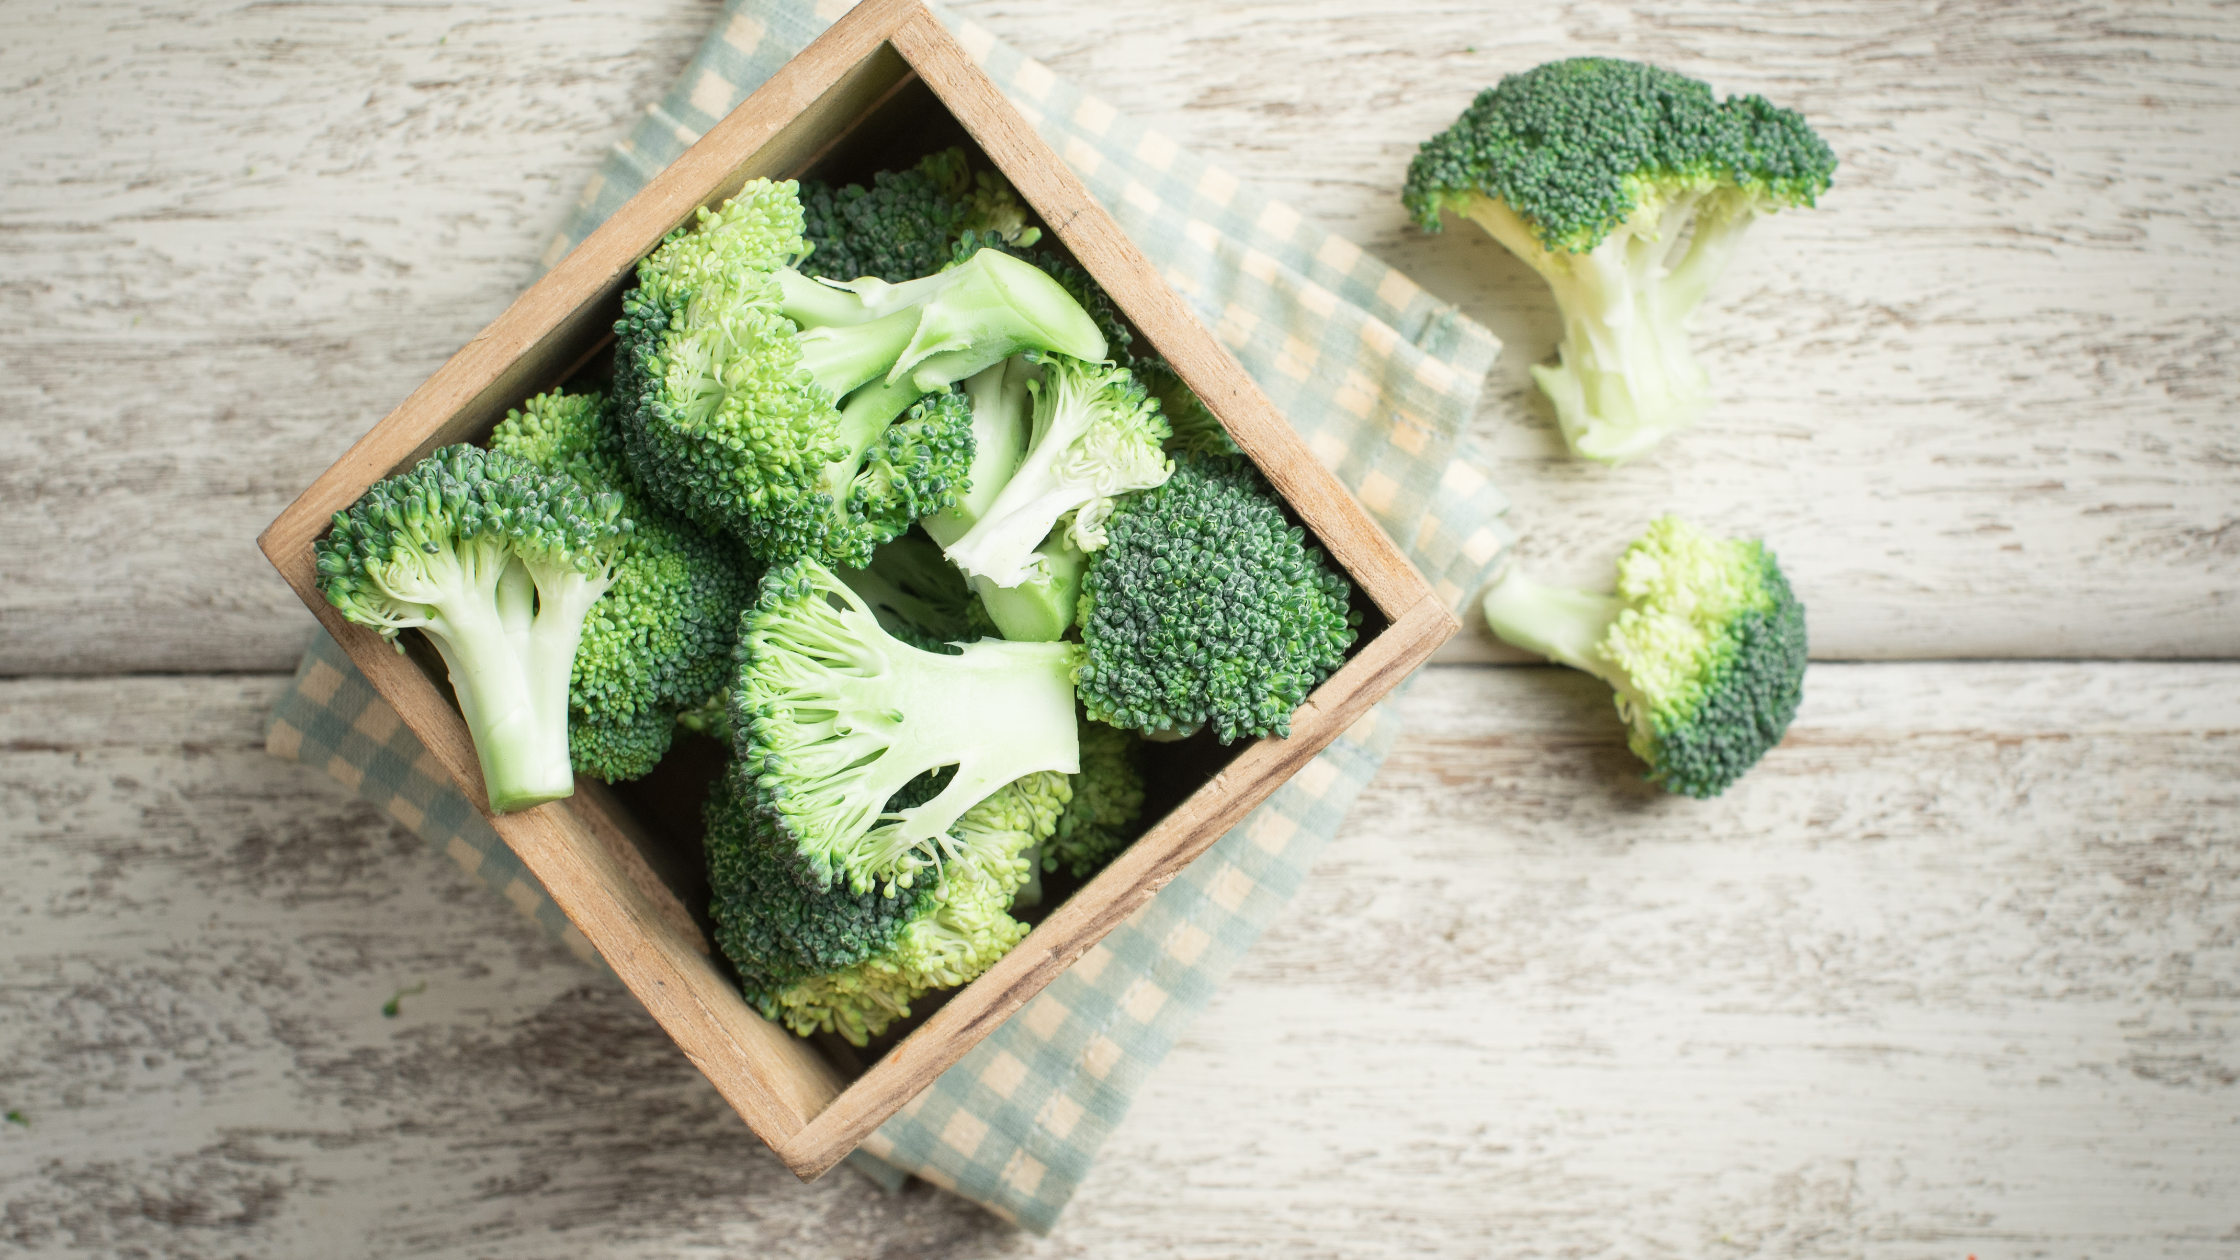 How to Eat Cruciferous Vegetables Without An IBS Flare-Ups